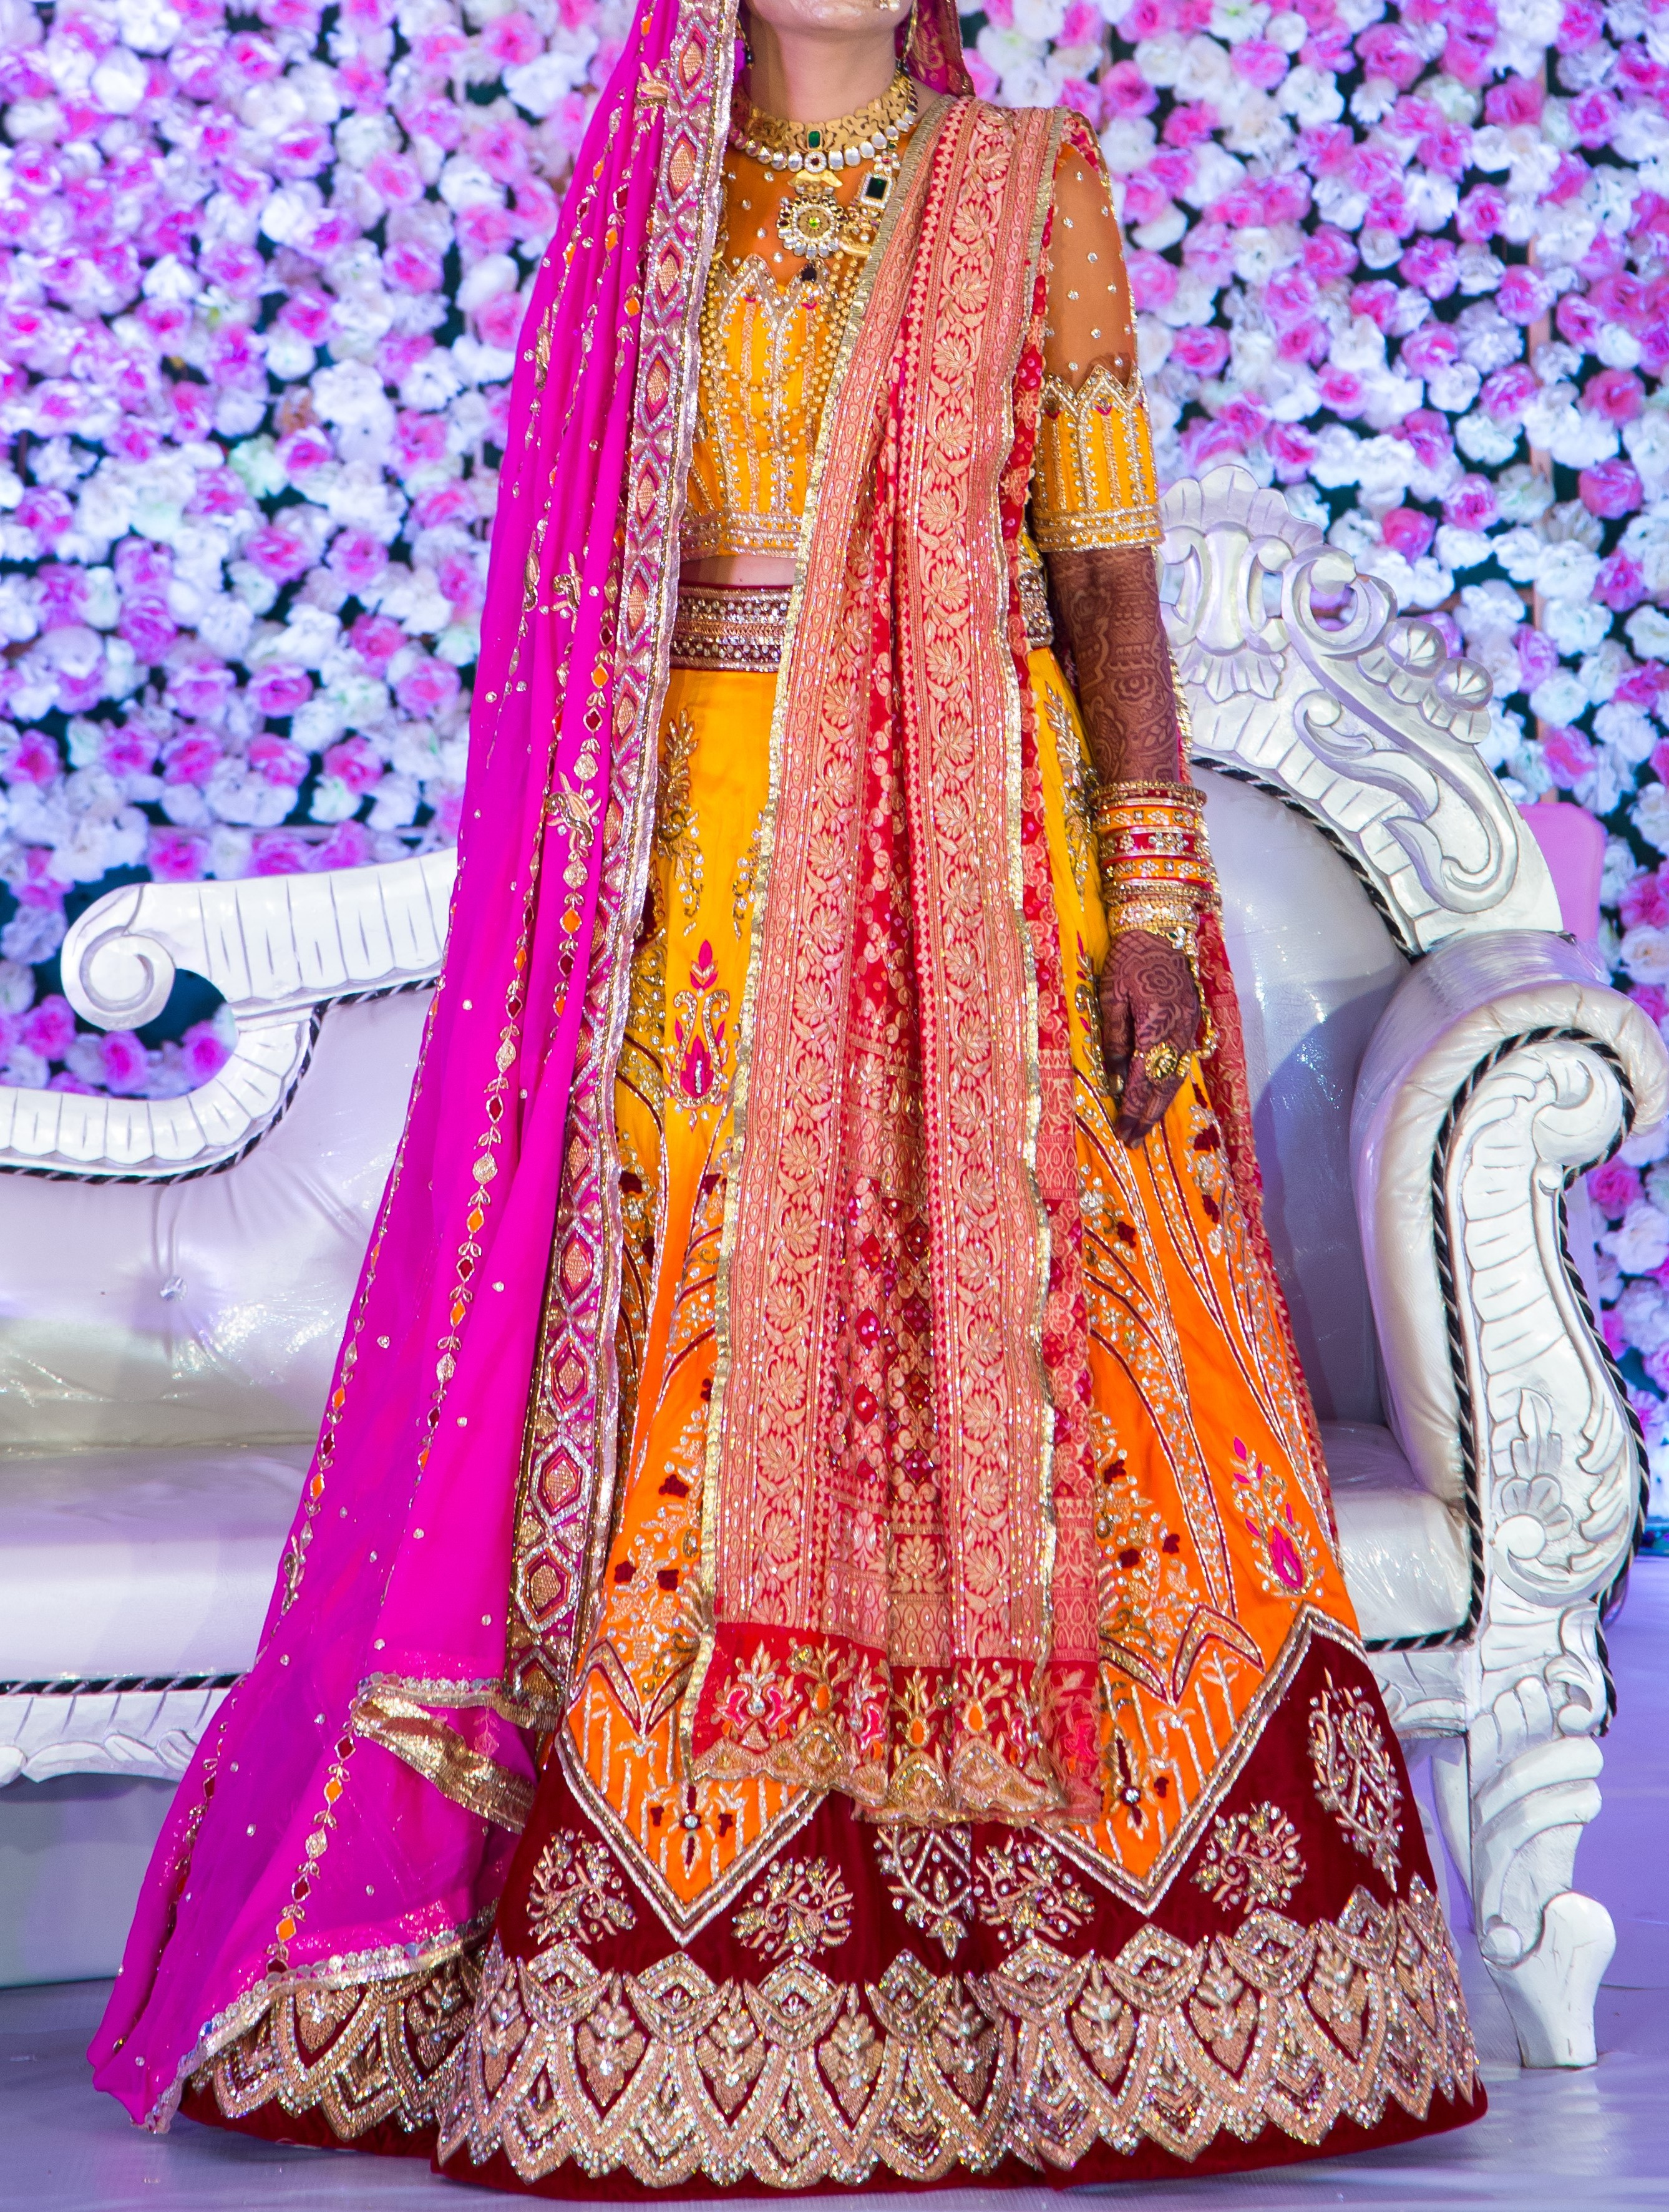 Lehanga Blouse and Dupatta Set for the Bride